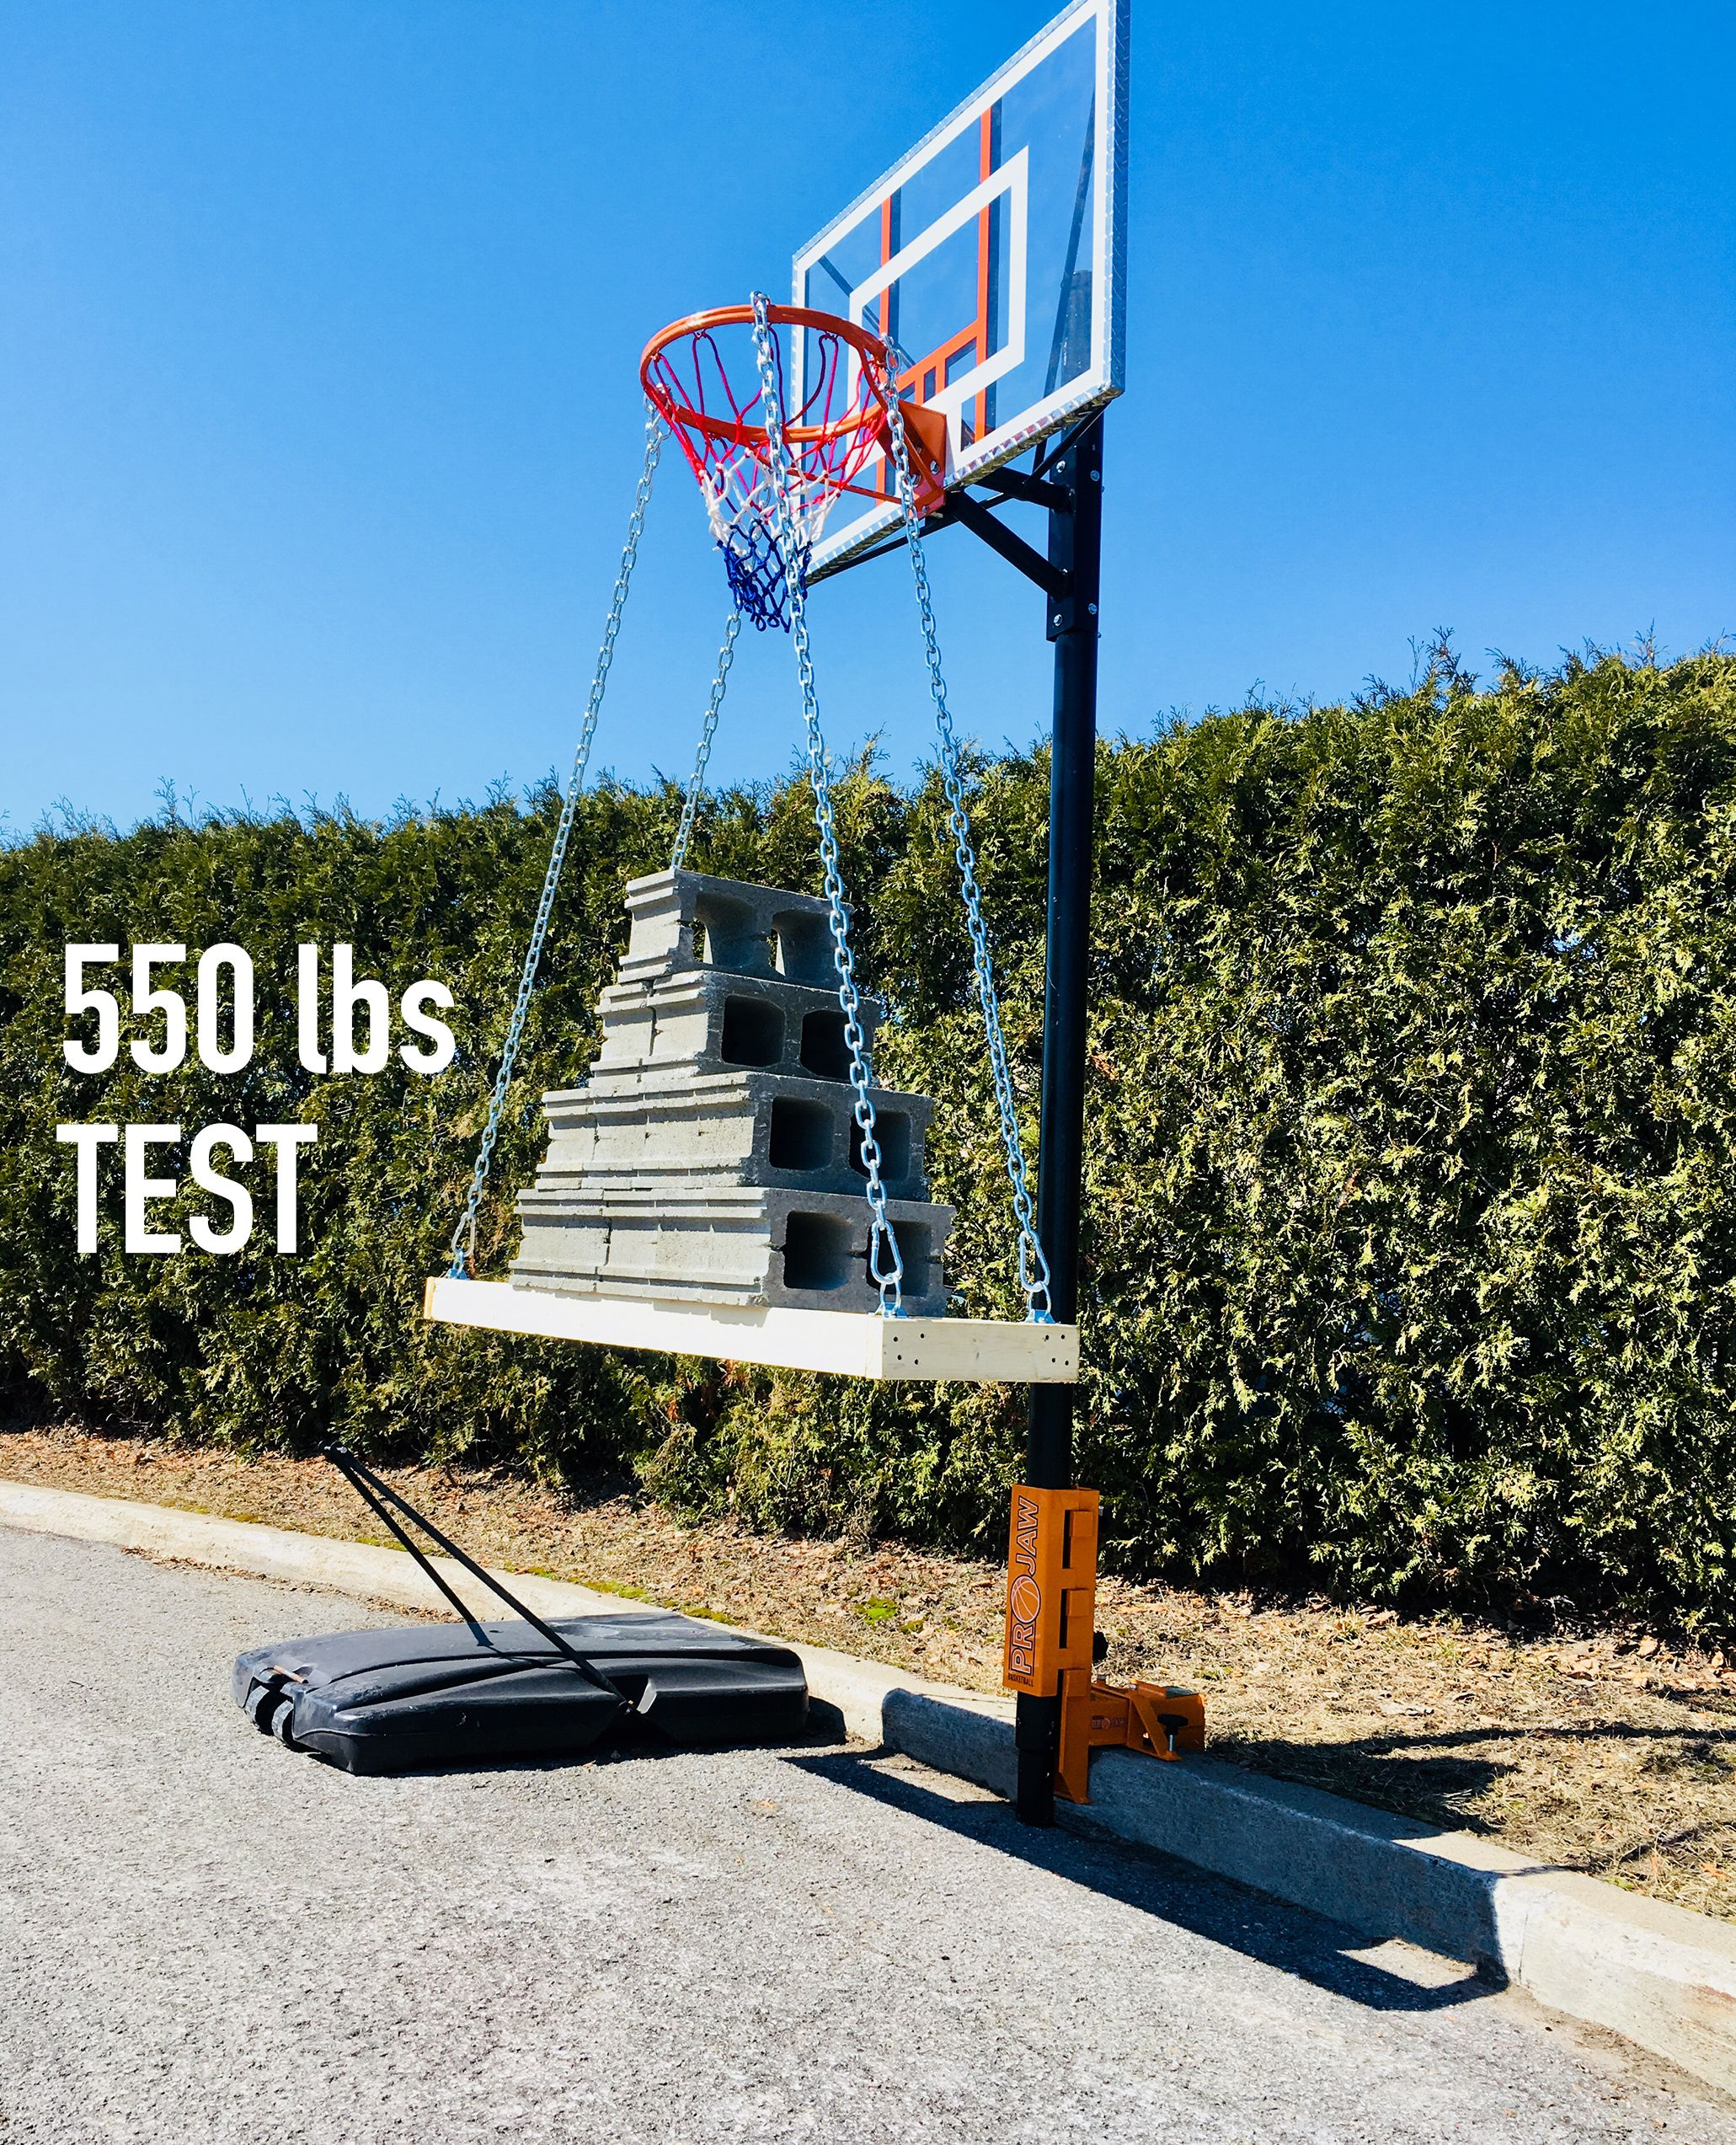 Basketball Projaw A Sturdy Steel Base For Portable Basketball Hoops Portable Basketball Hoop Diy Basketball Diy Basketball Hoop